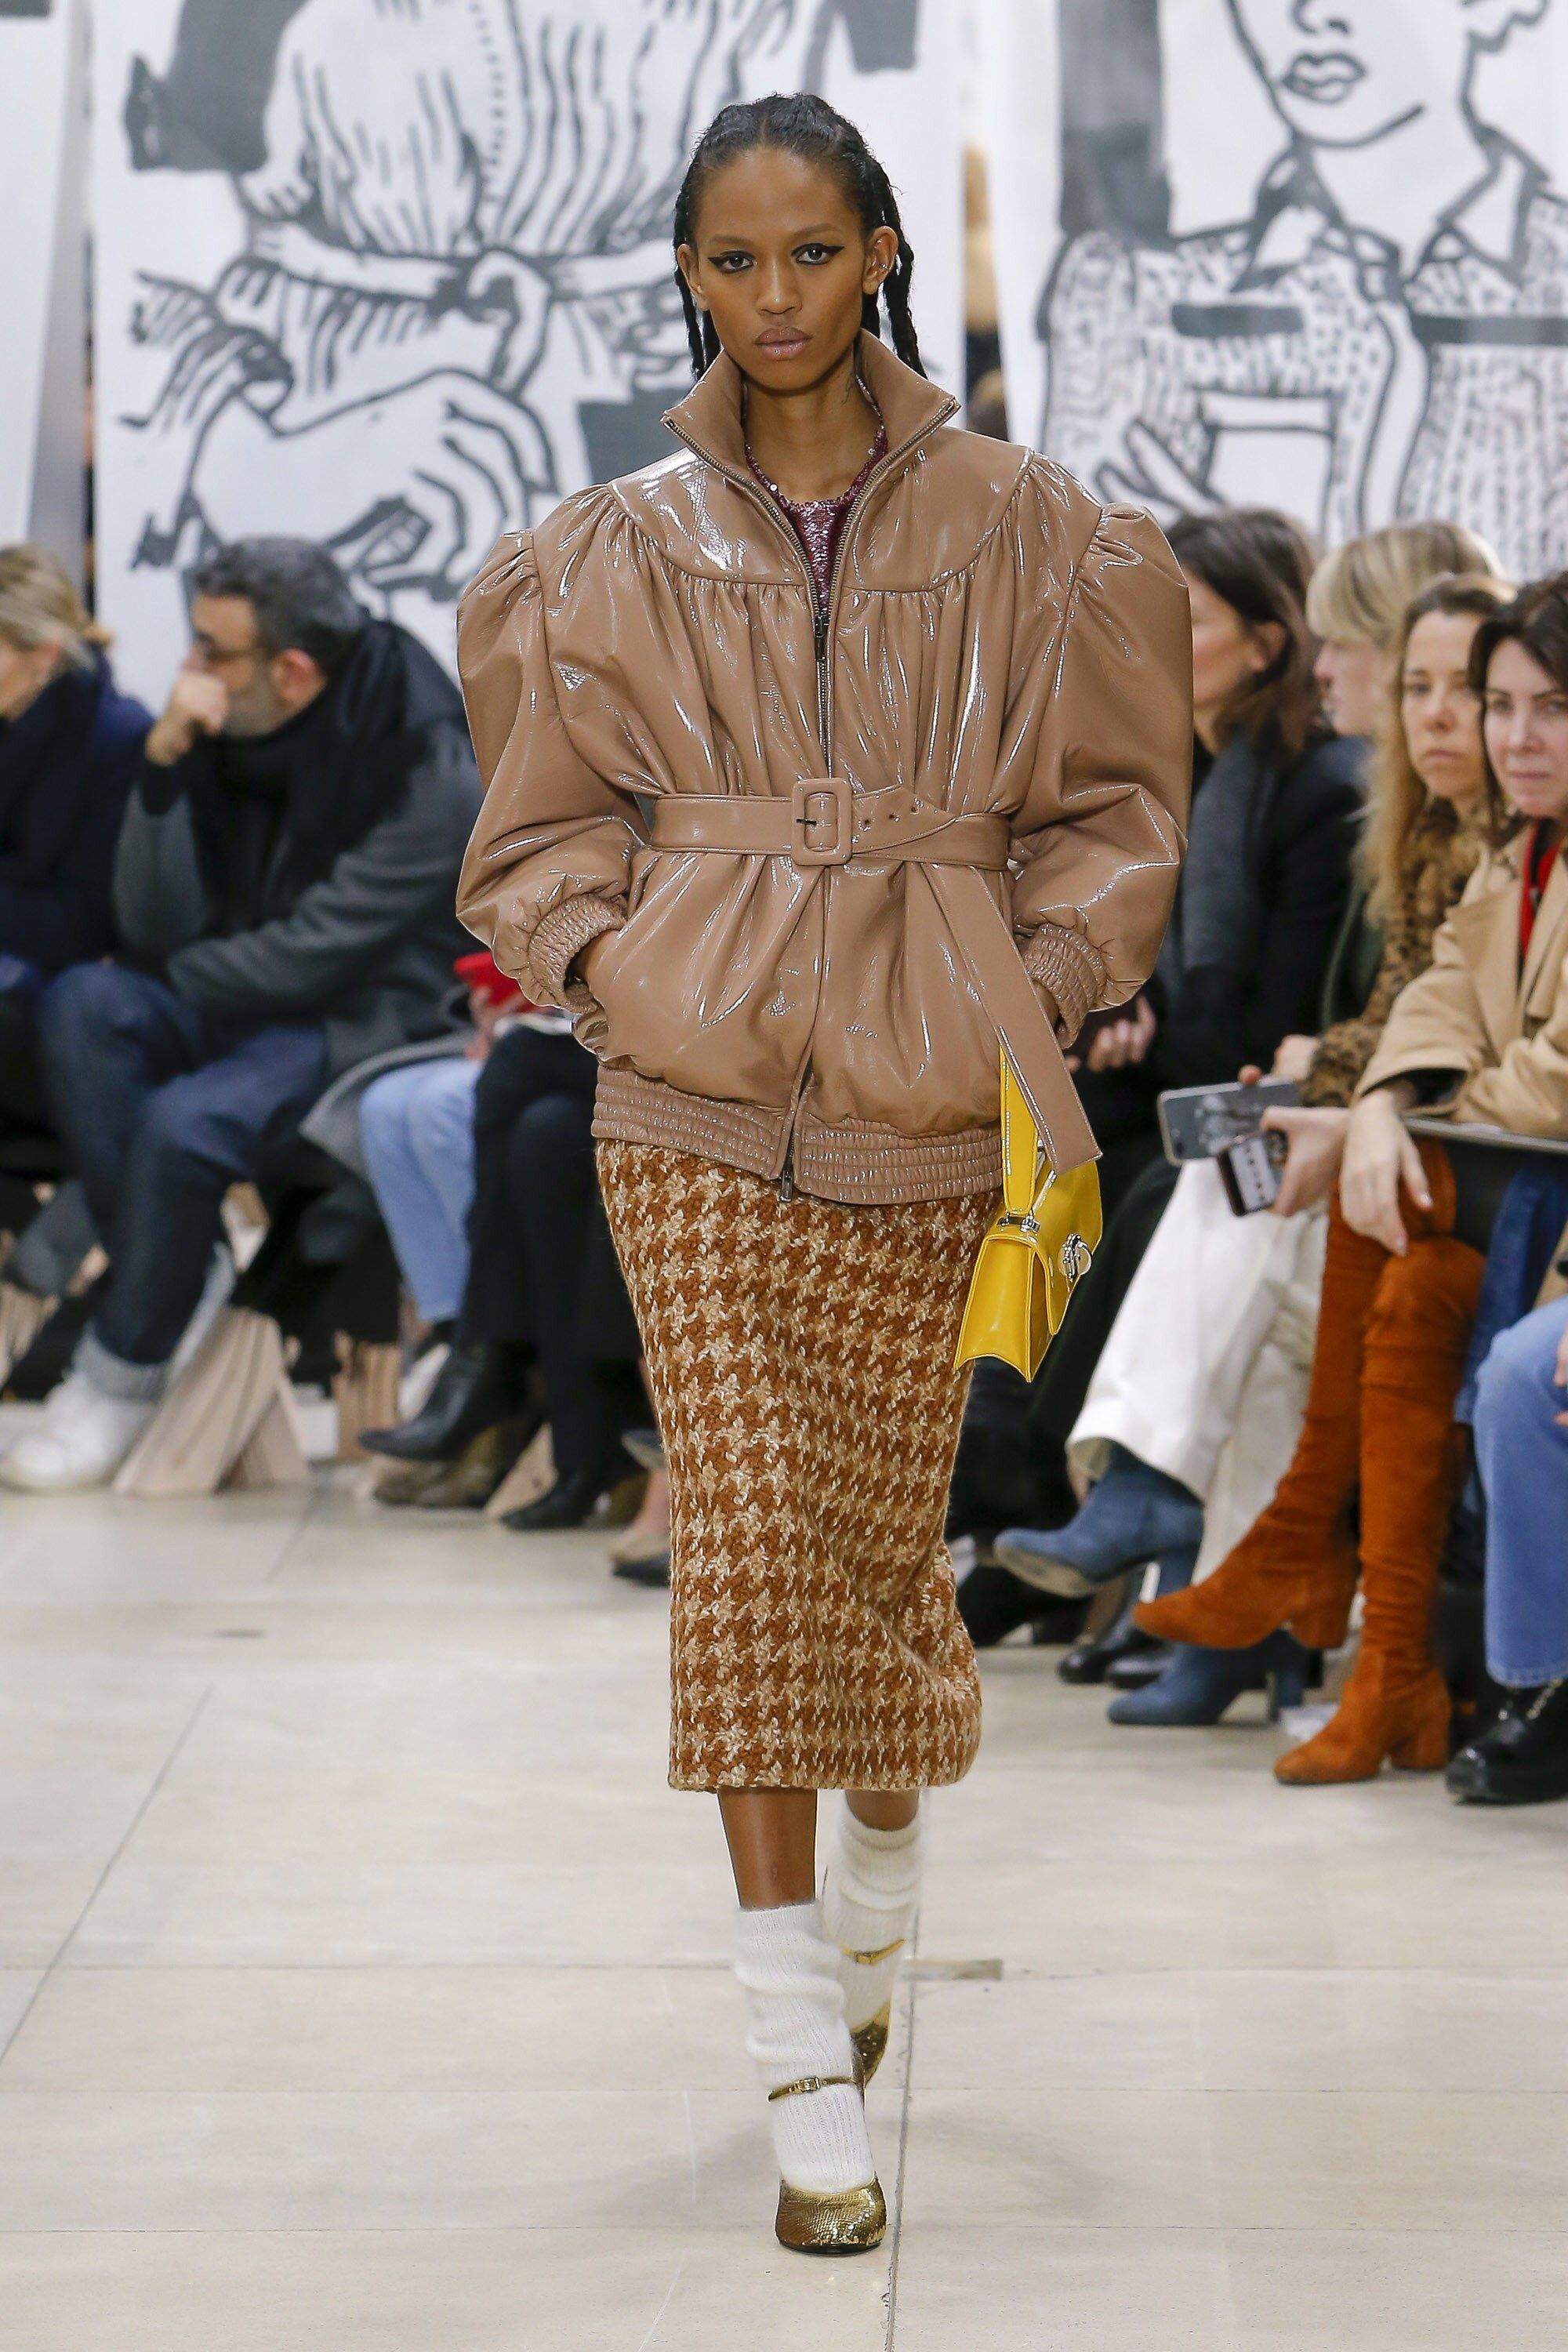 ce6a7e6c2566 Miu Miu Fall 2018 Ready-to-Wear Fashion Show Collection  See the complete Miu  Miu Fall 2018 Ready-to-Wear collection. Look 20